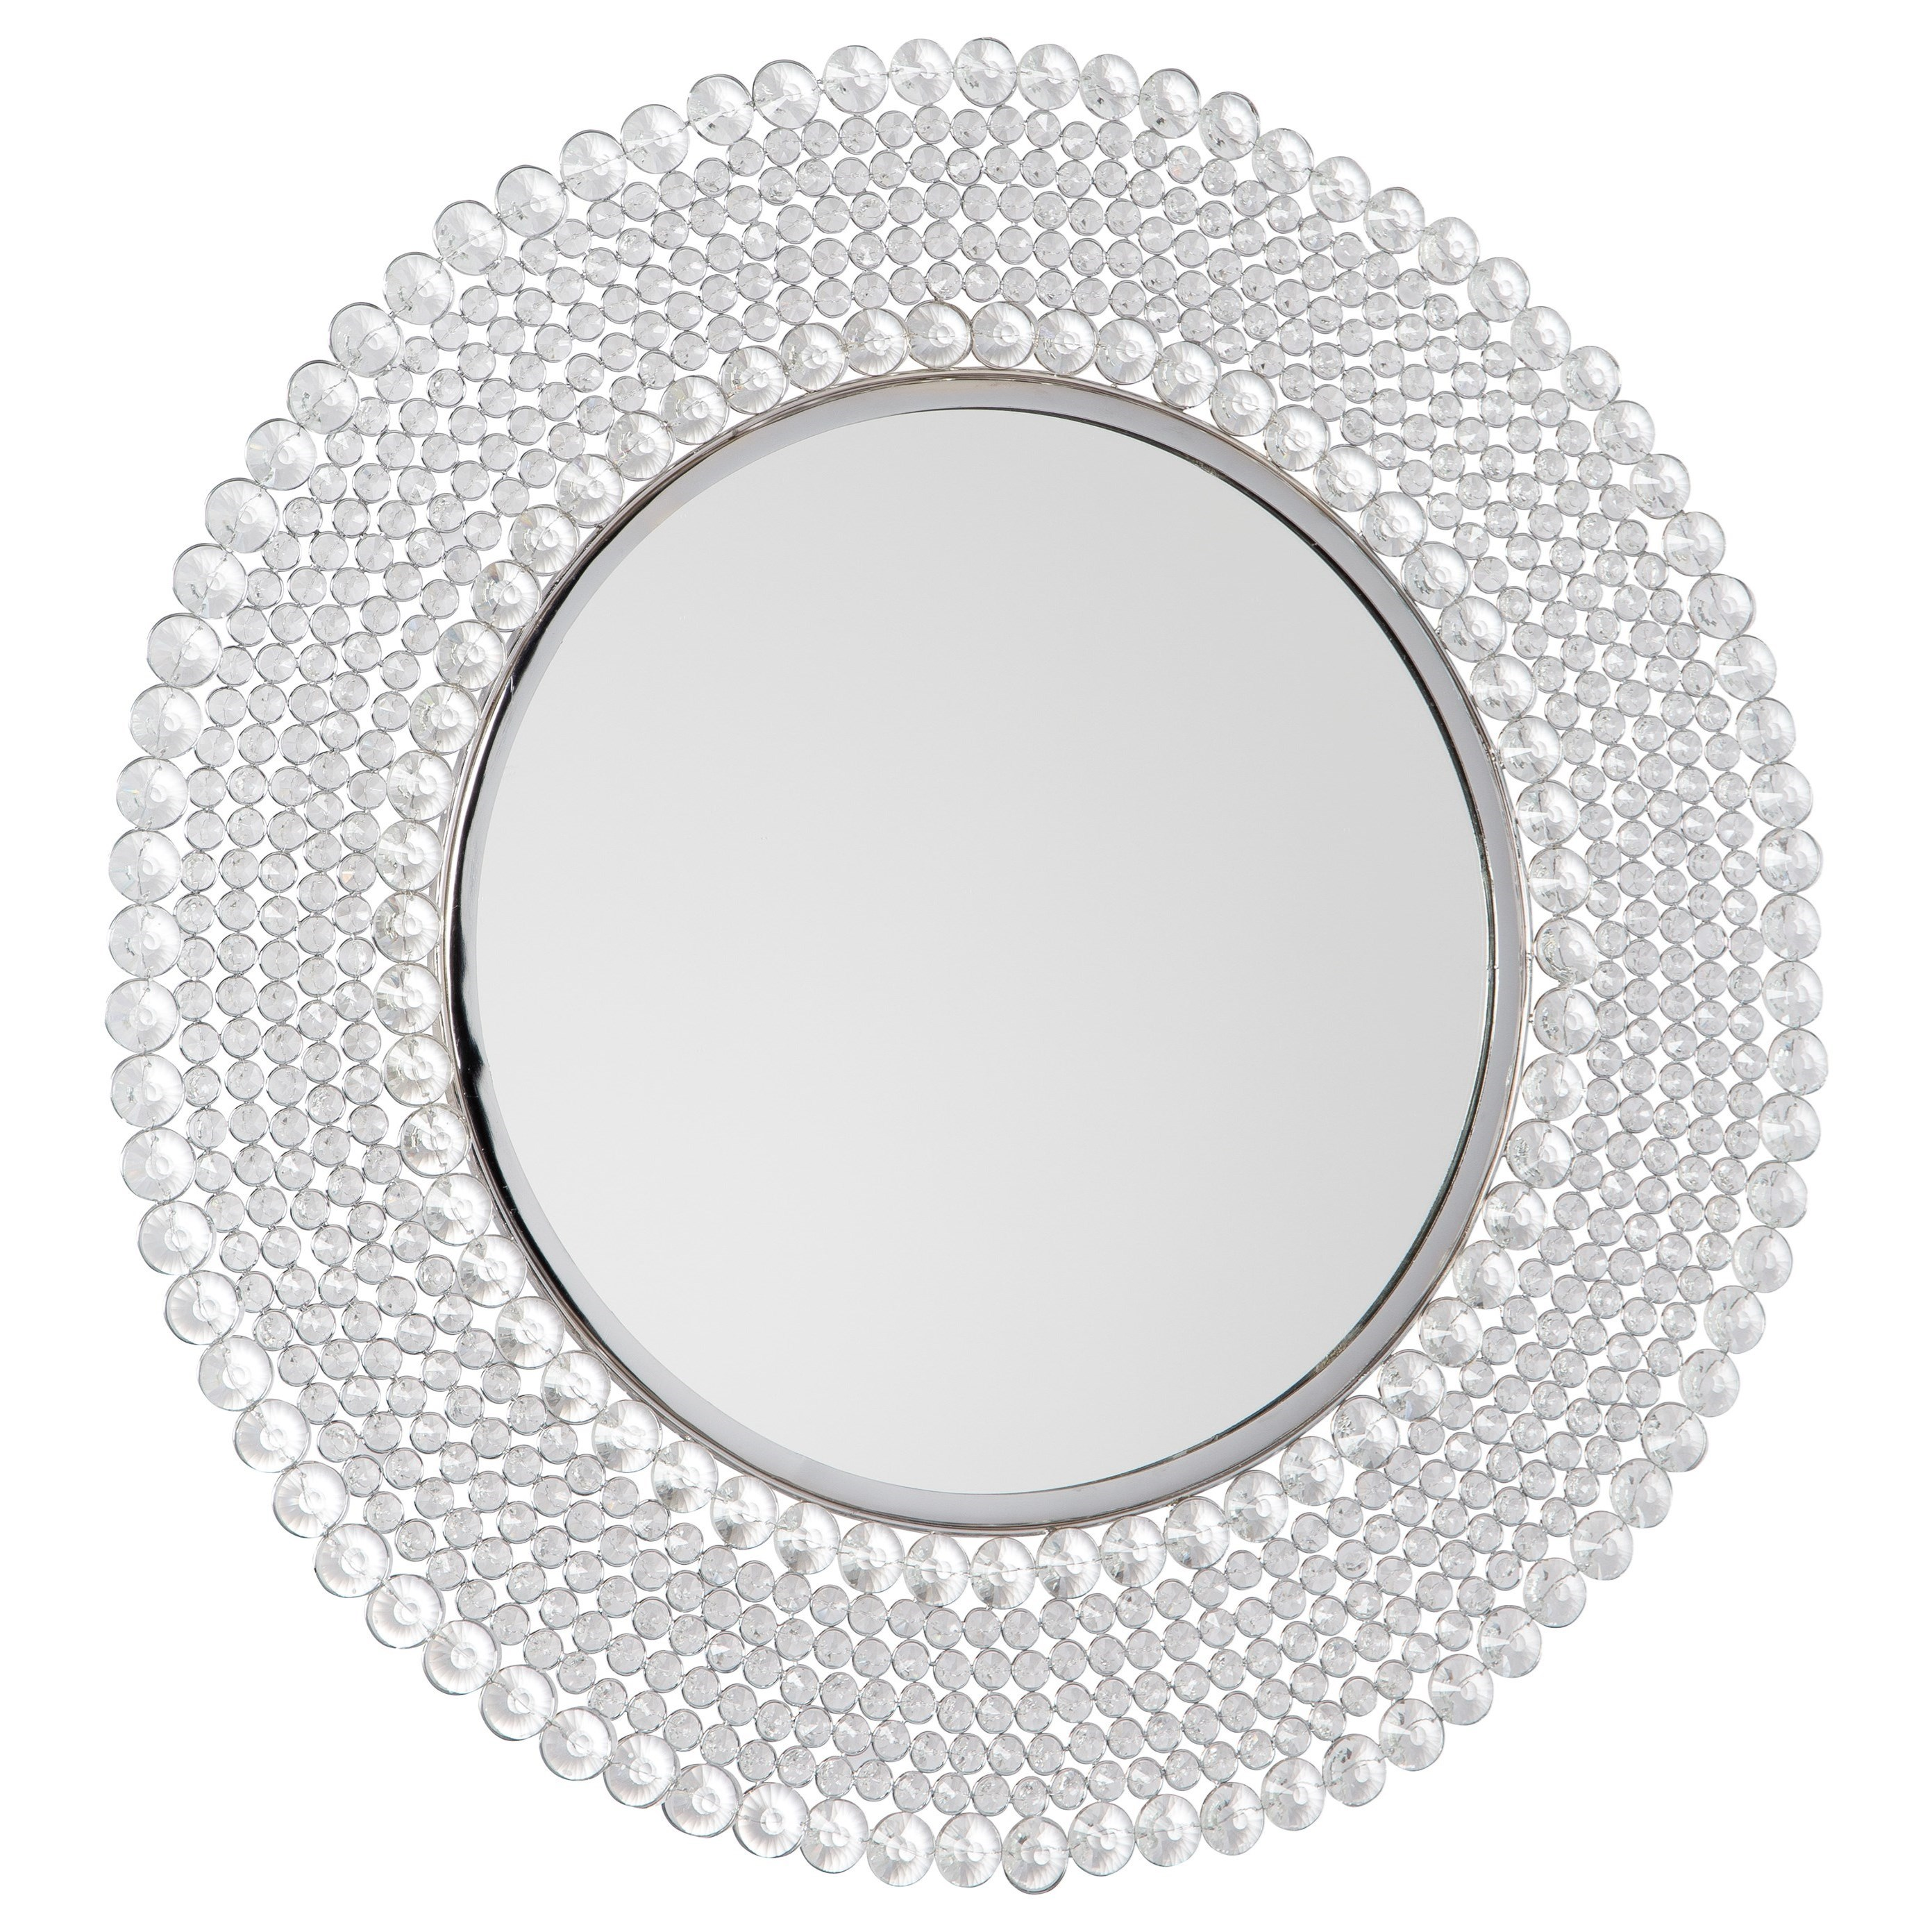 Accent Mirrors Marly Clear/Silver Finish Accent Mirror by Signature Design by Ashley at Rife's Home Furniture